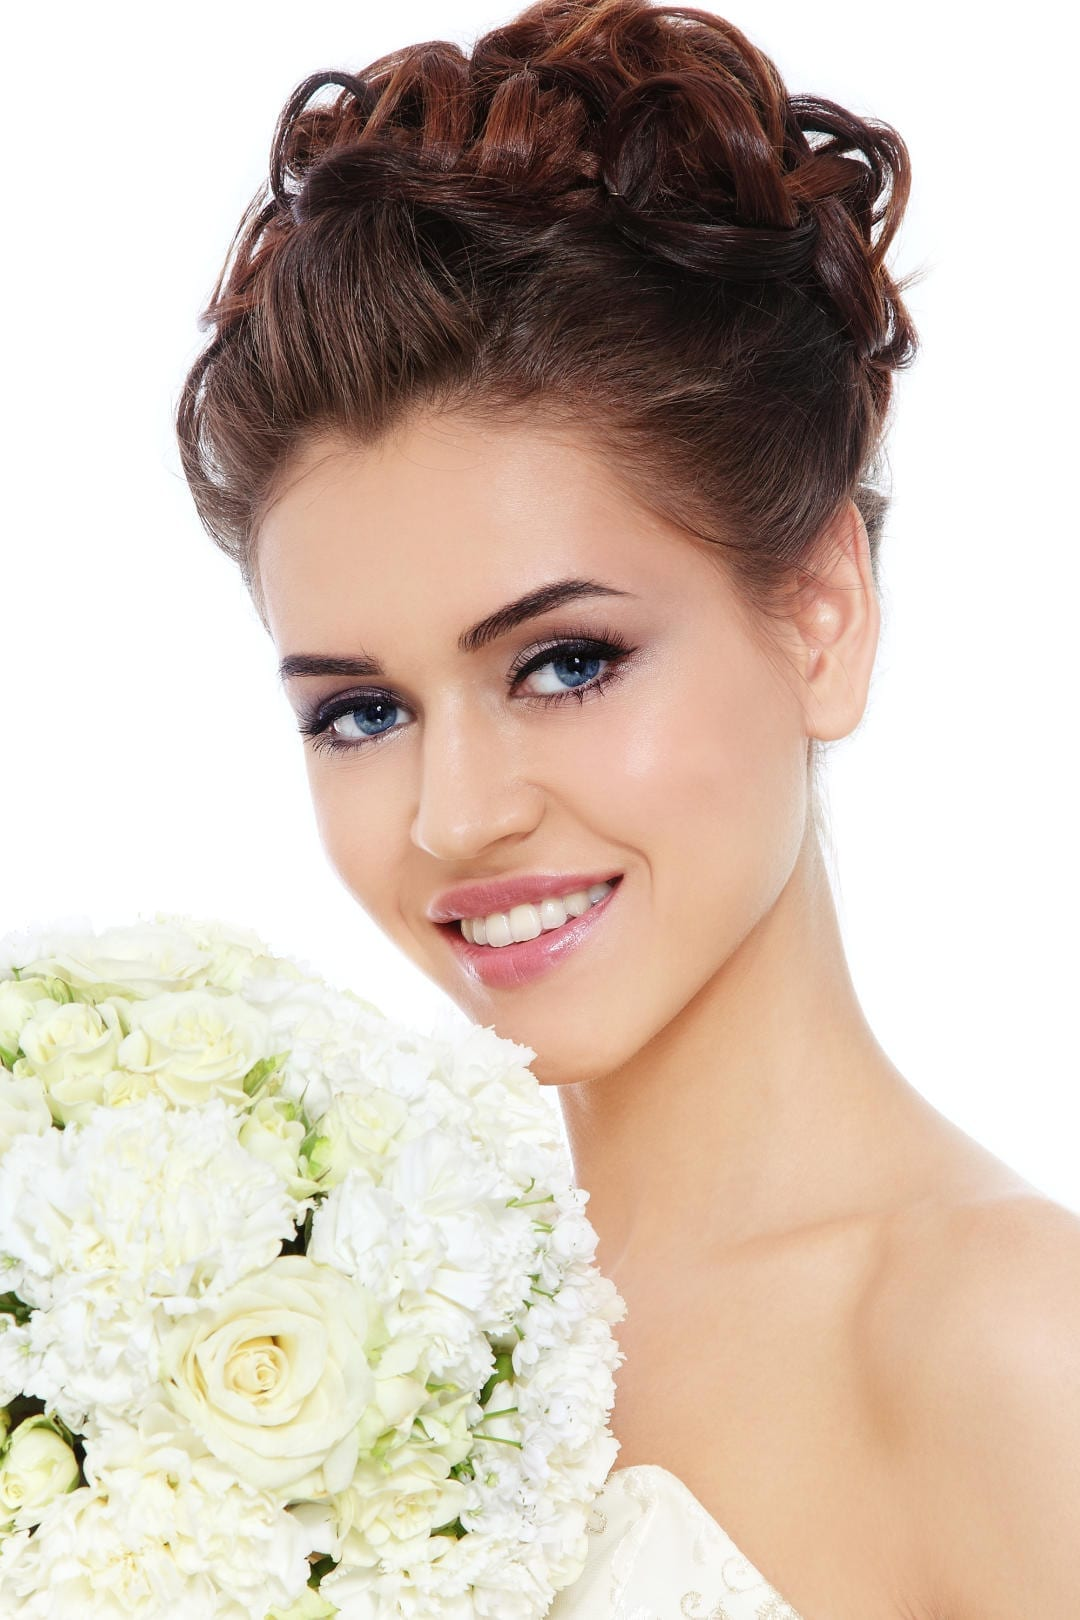 Specialist-Wedding-Makeup-Artist-Makeup-By-Mirna6